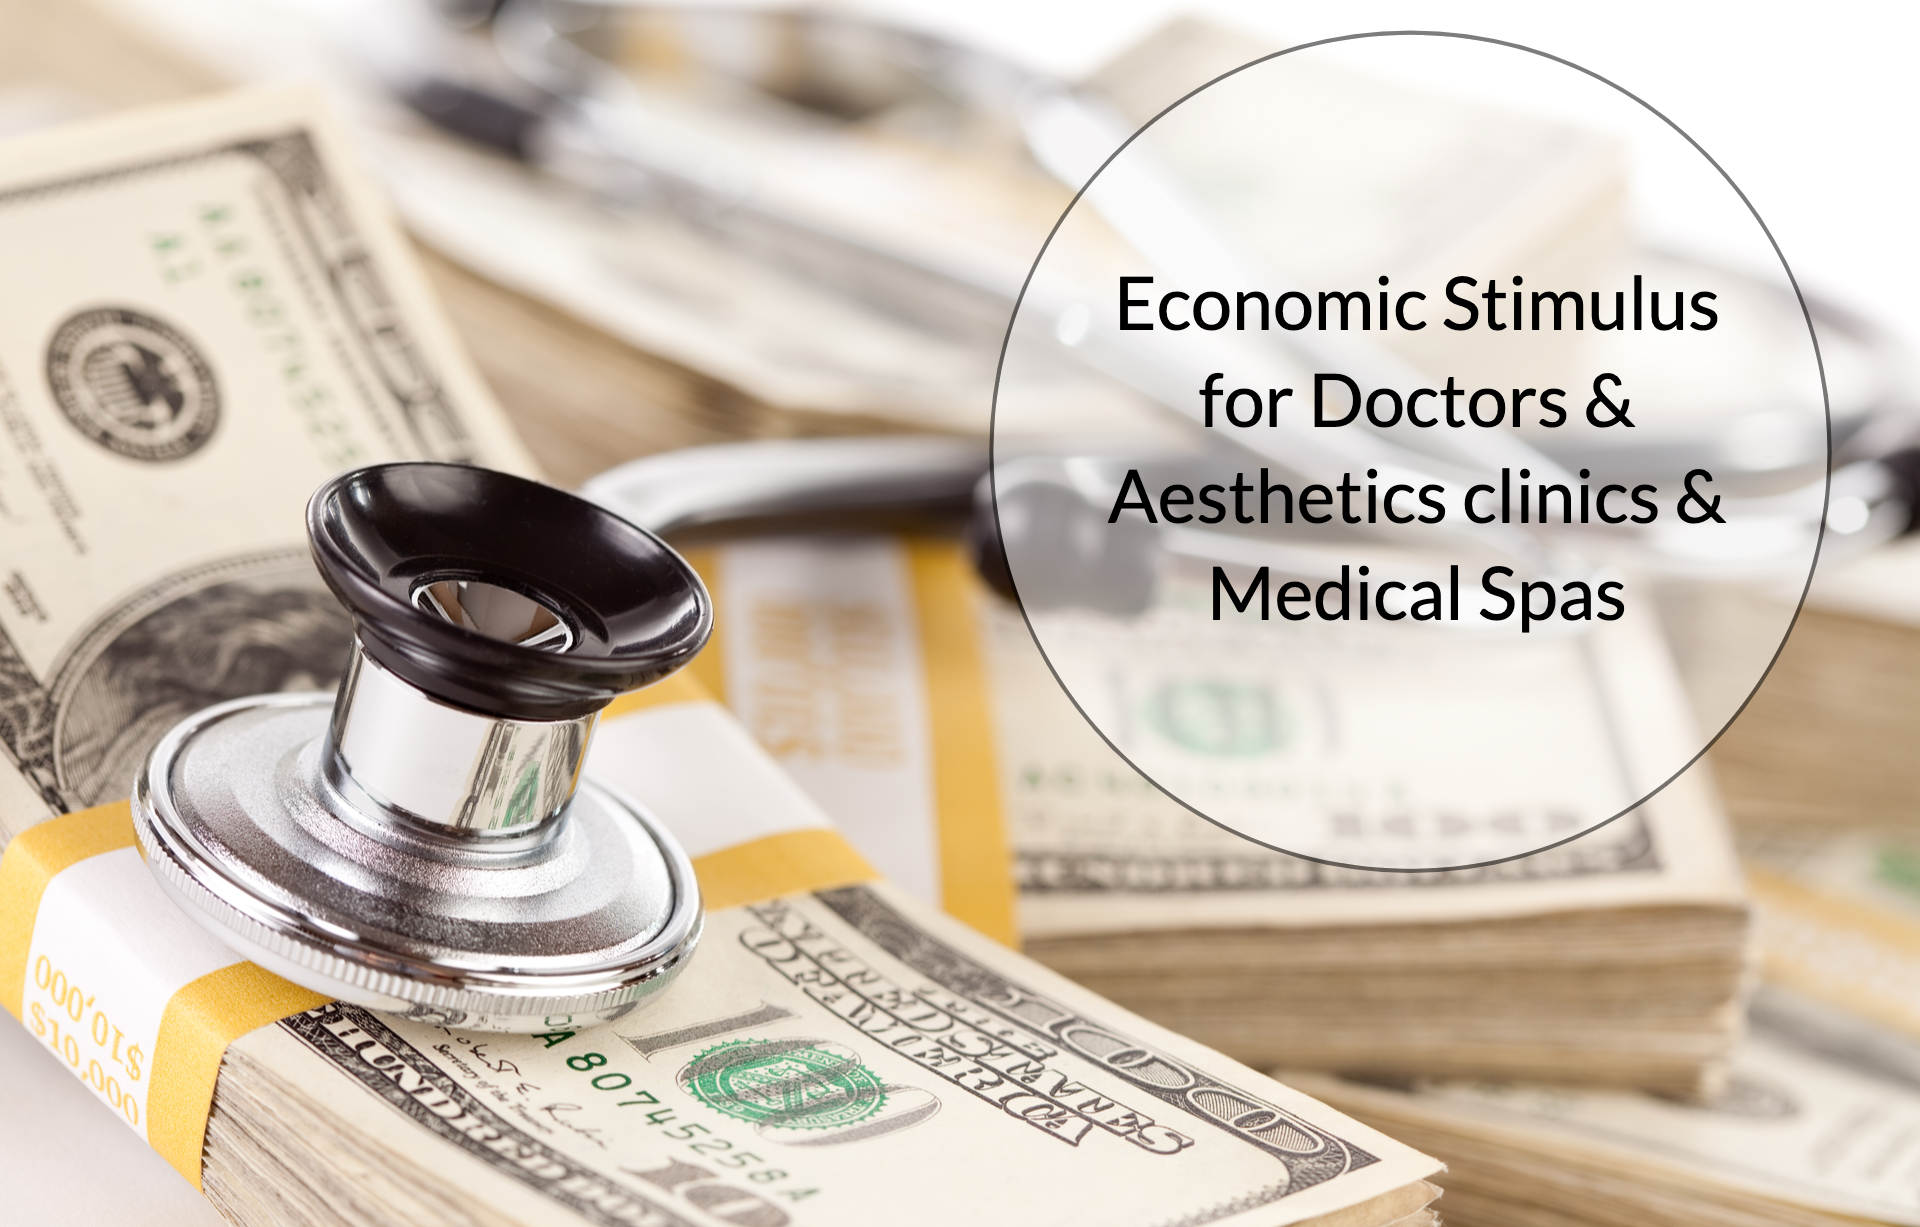 Economic Stimulus for Doctors, Aesthetics Clinics & Medical Spas